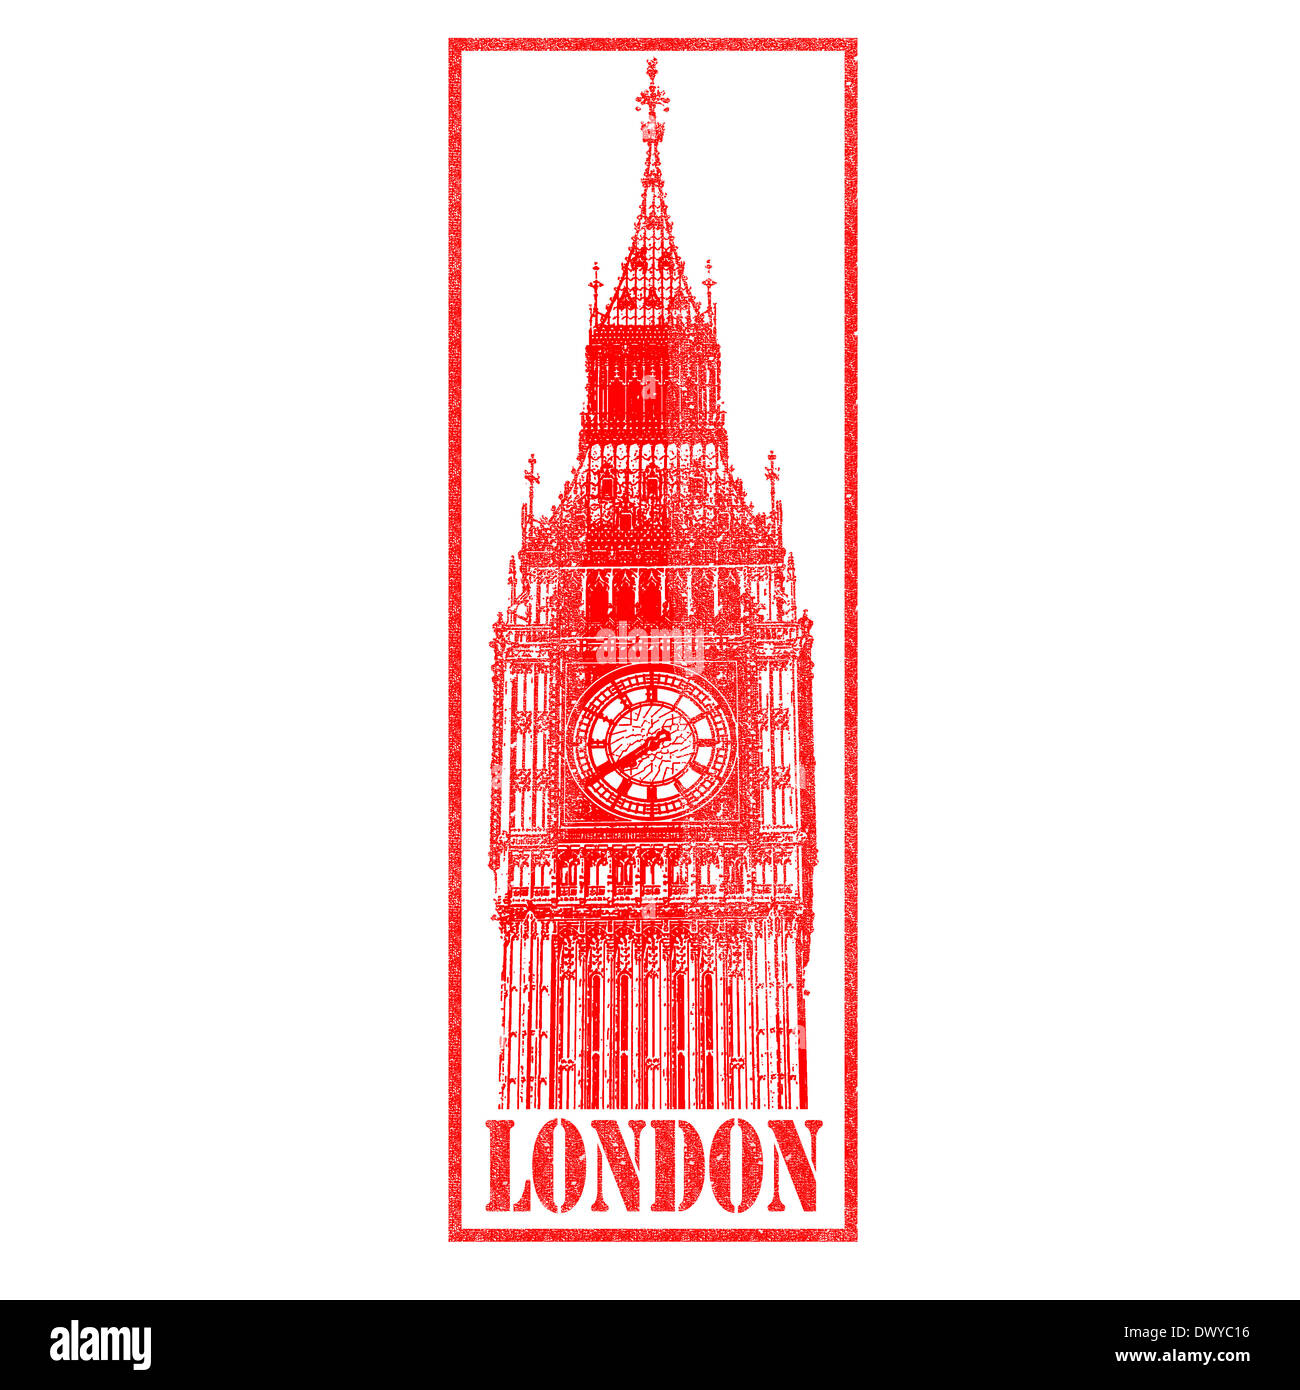 Big Ben/London red rubber Stamp. - Stock Image